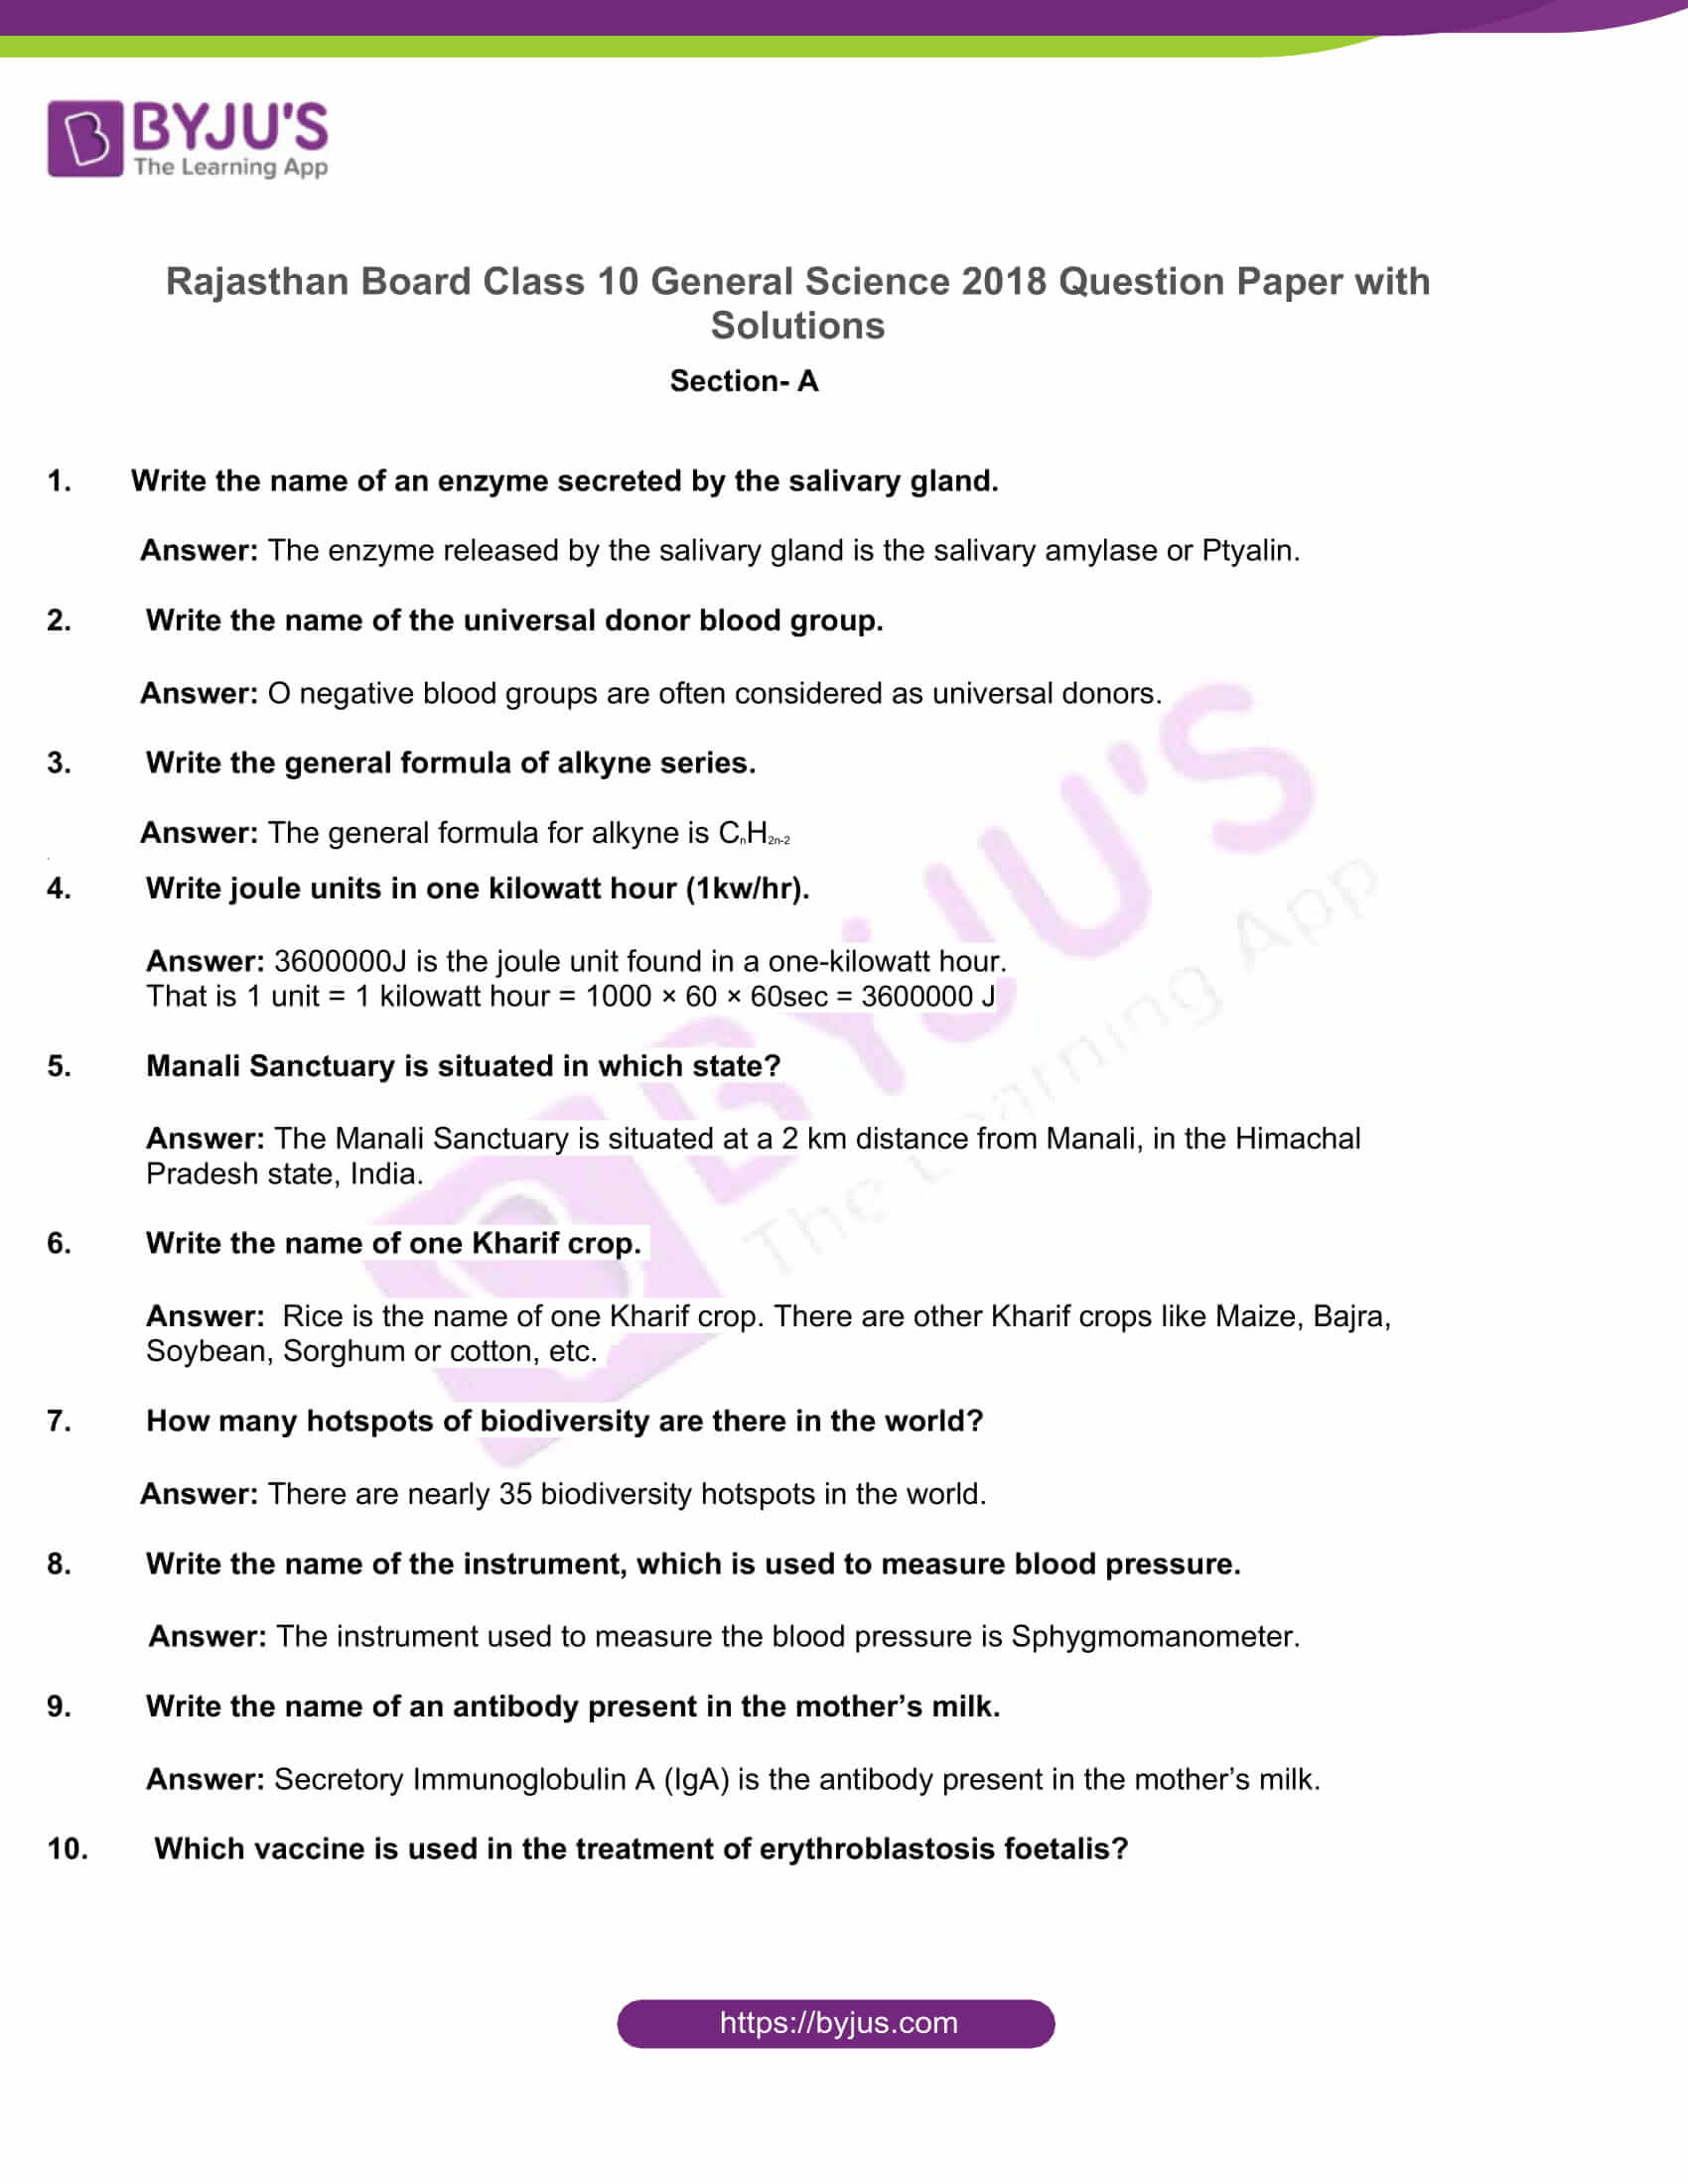 rajasthan board class 10 general science 2018 solutions 1